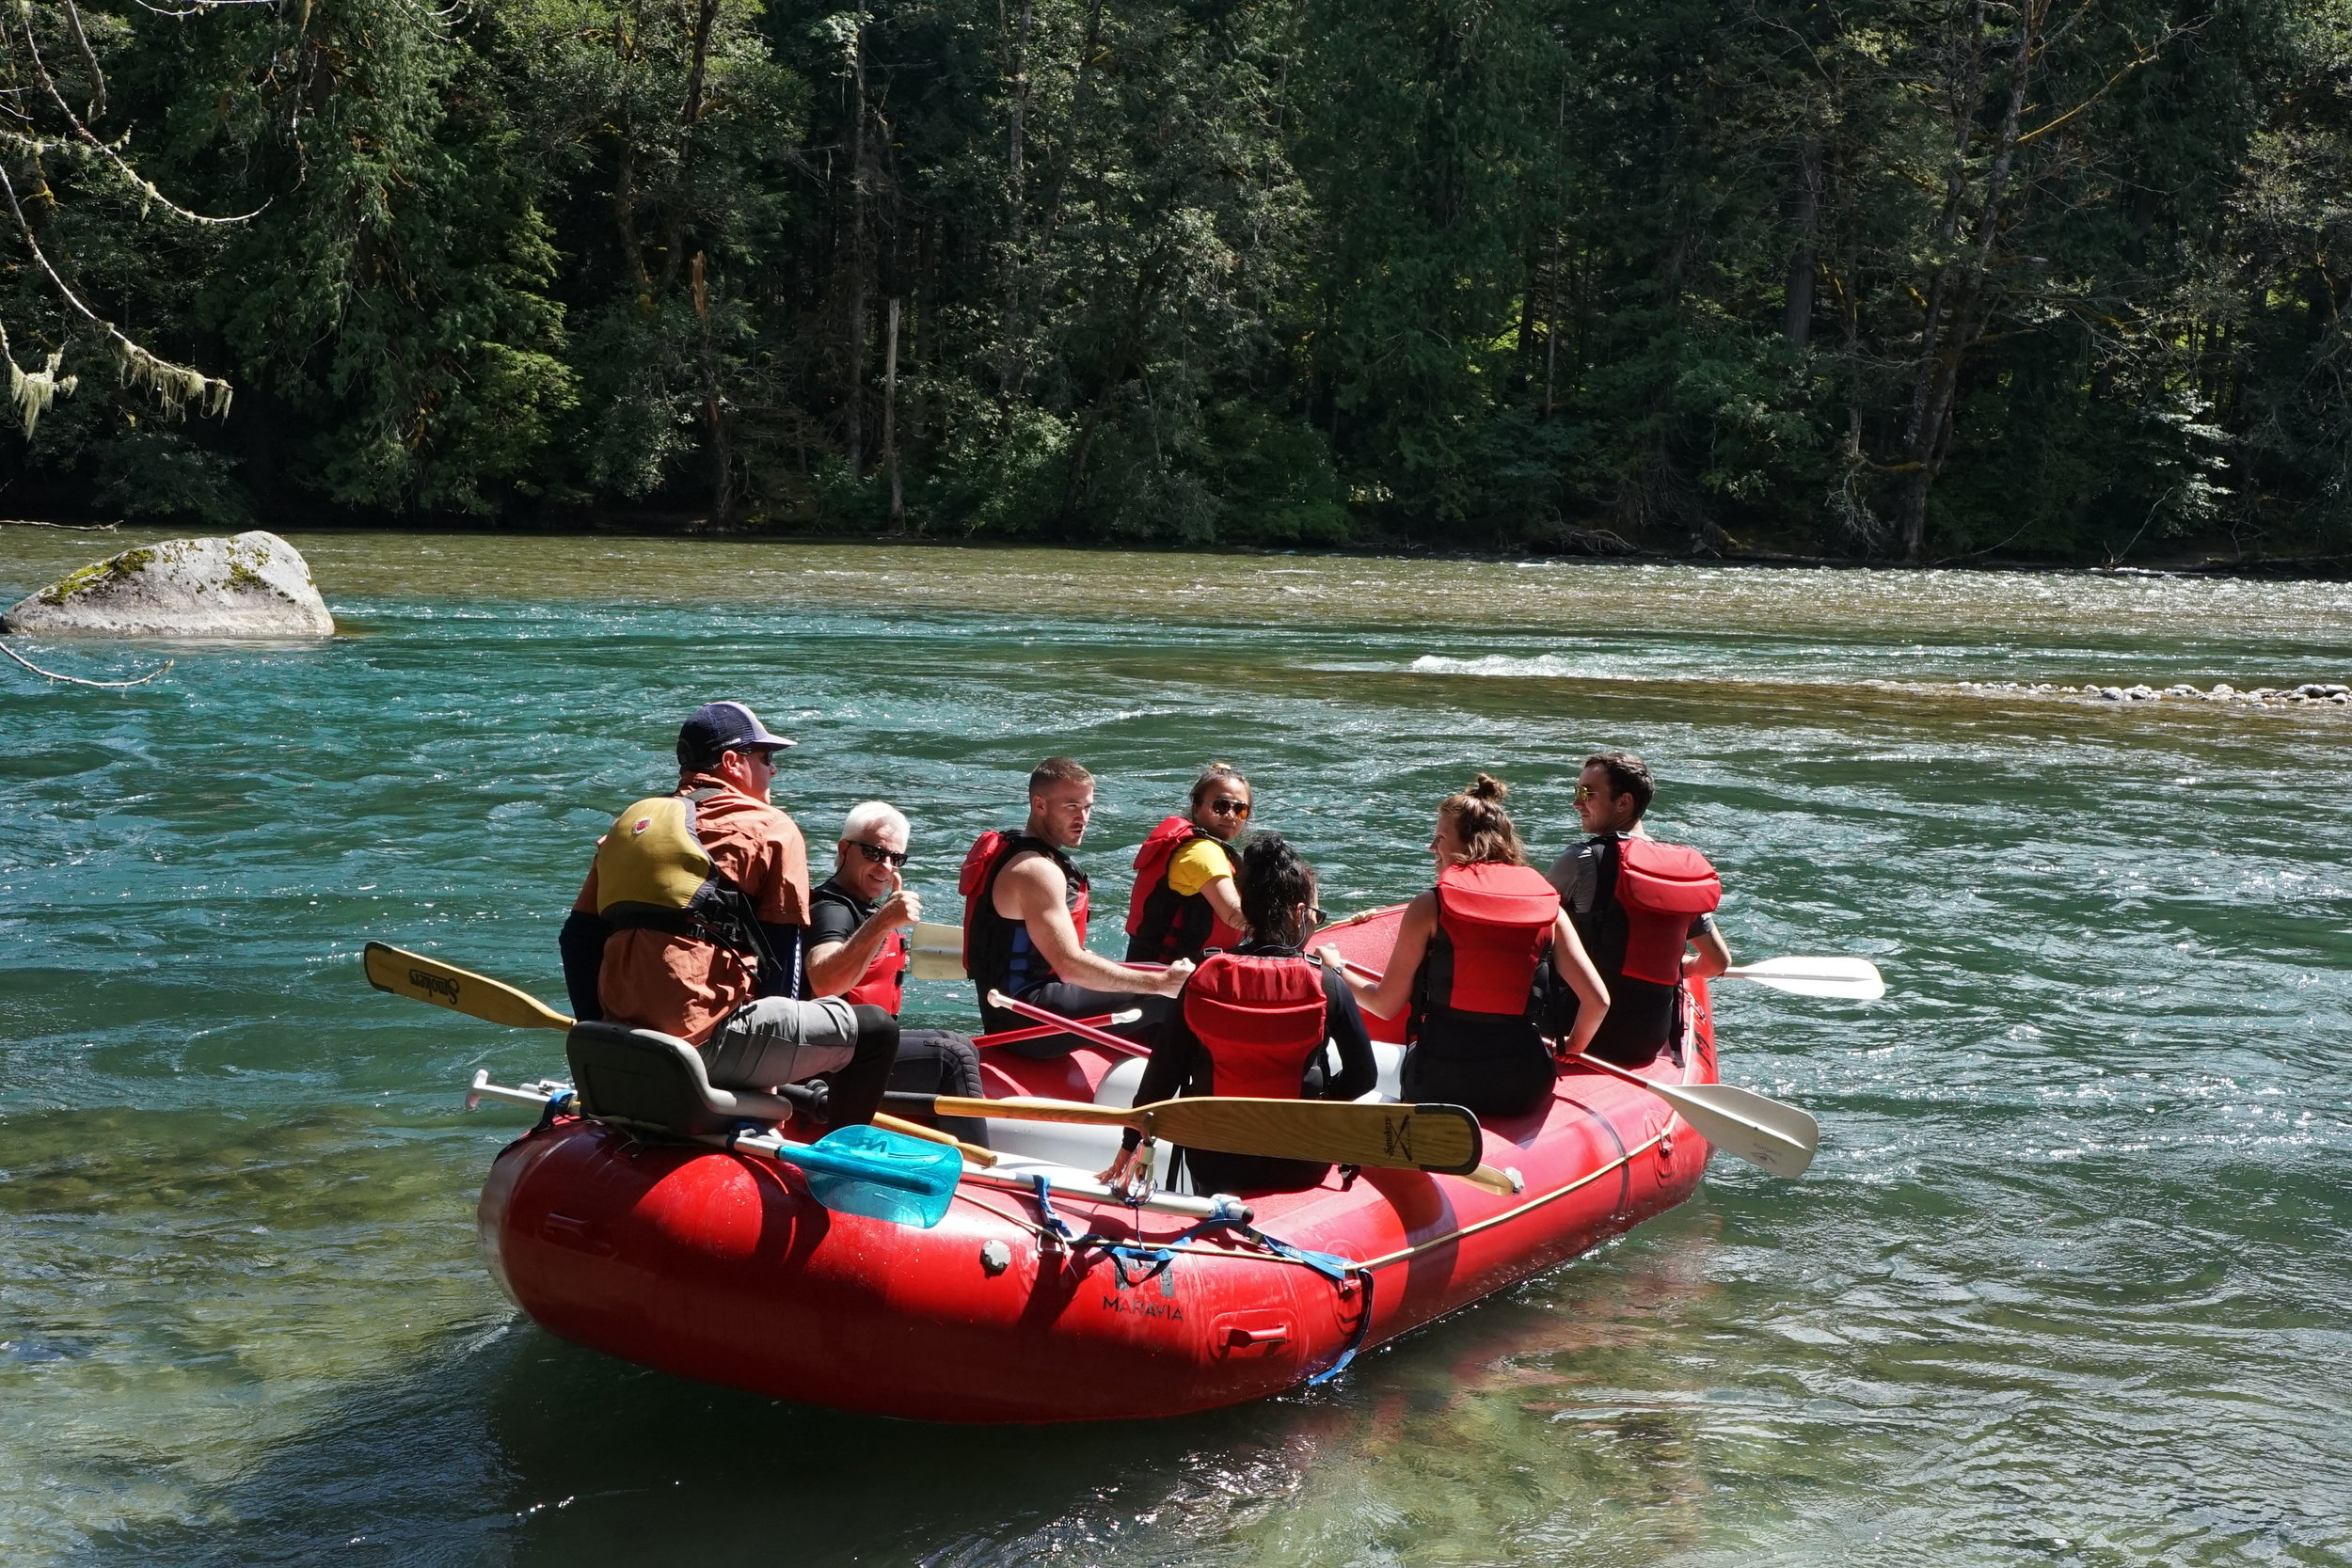 There are many more reasons to go river rafting other than just because it's fun!